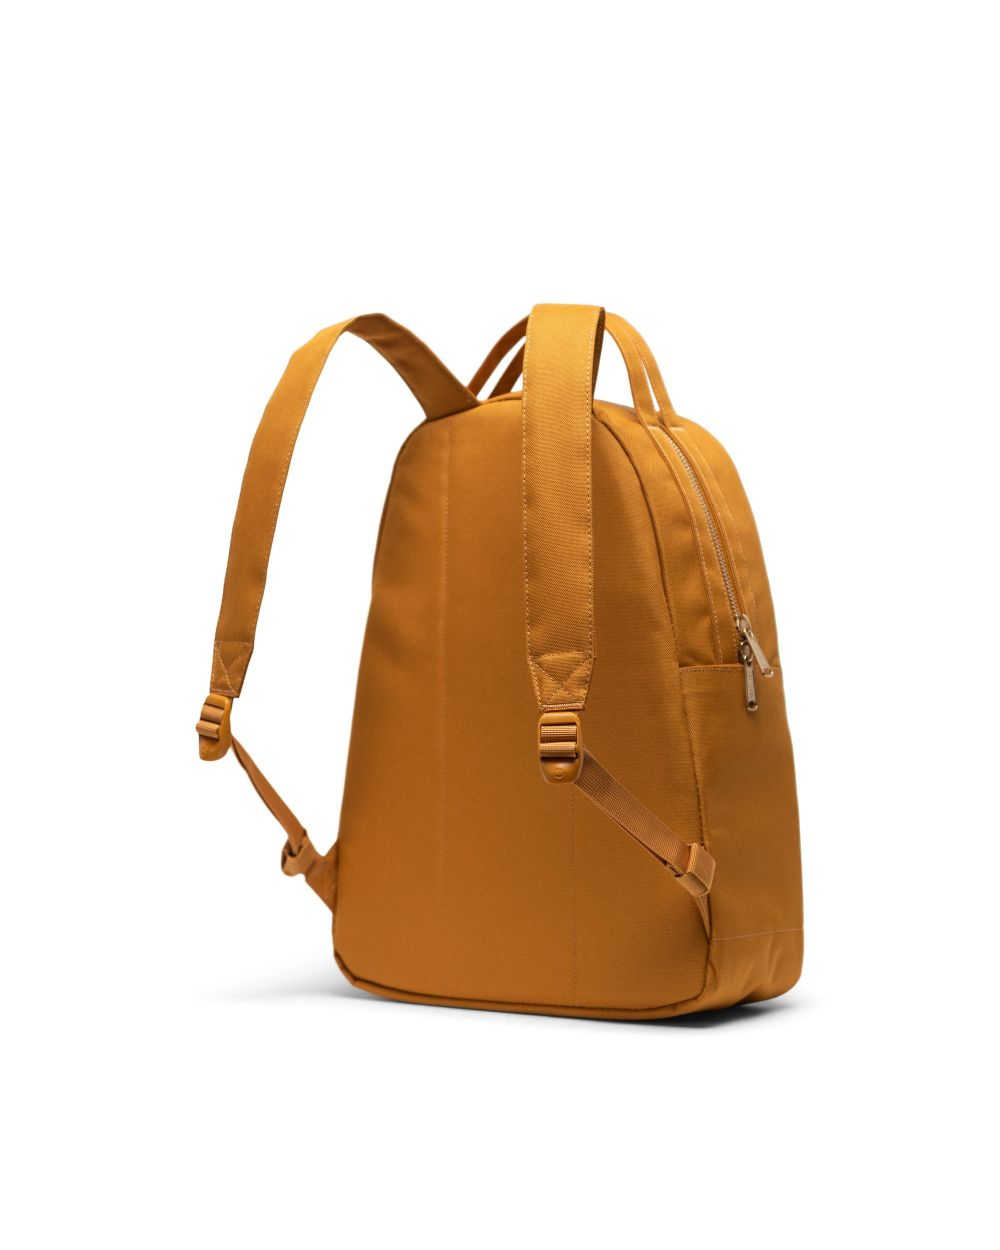 NOVA BACKPACK MID-VOLUME - BUCKTHORN BROWN